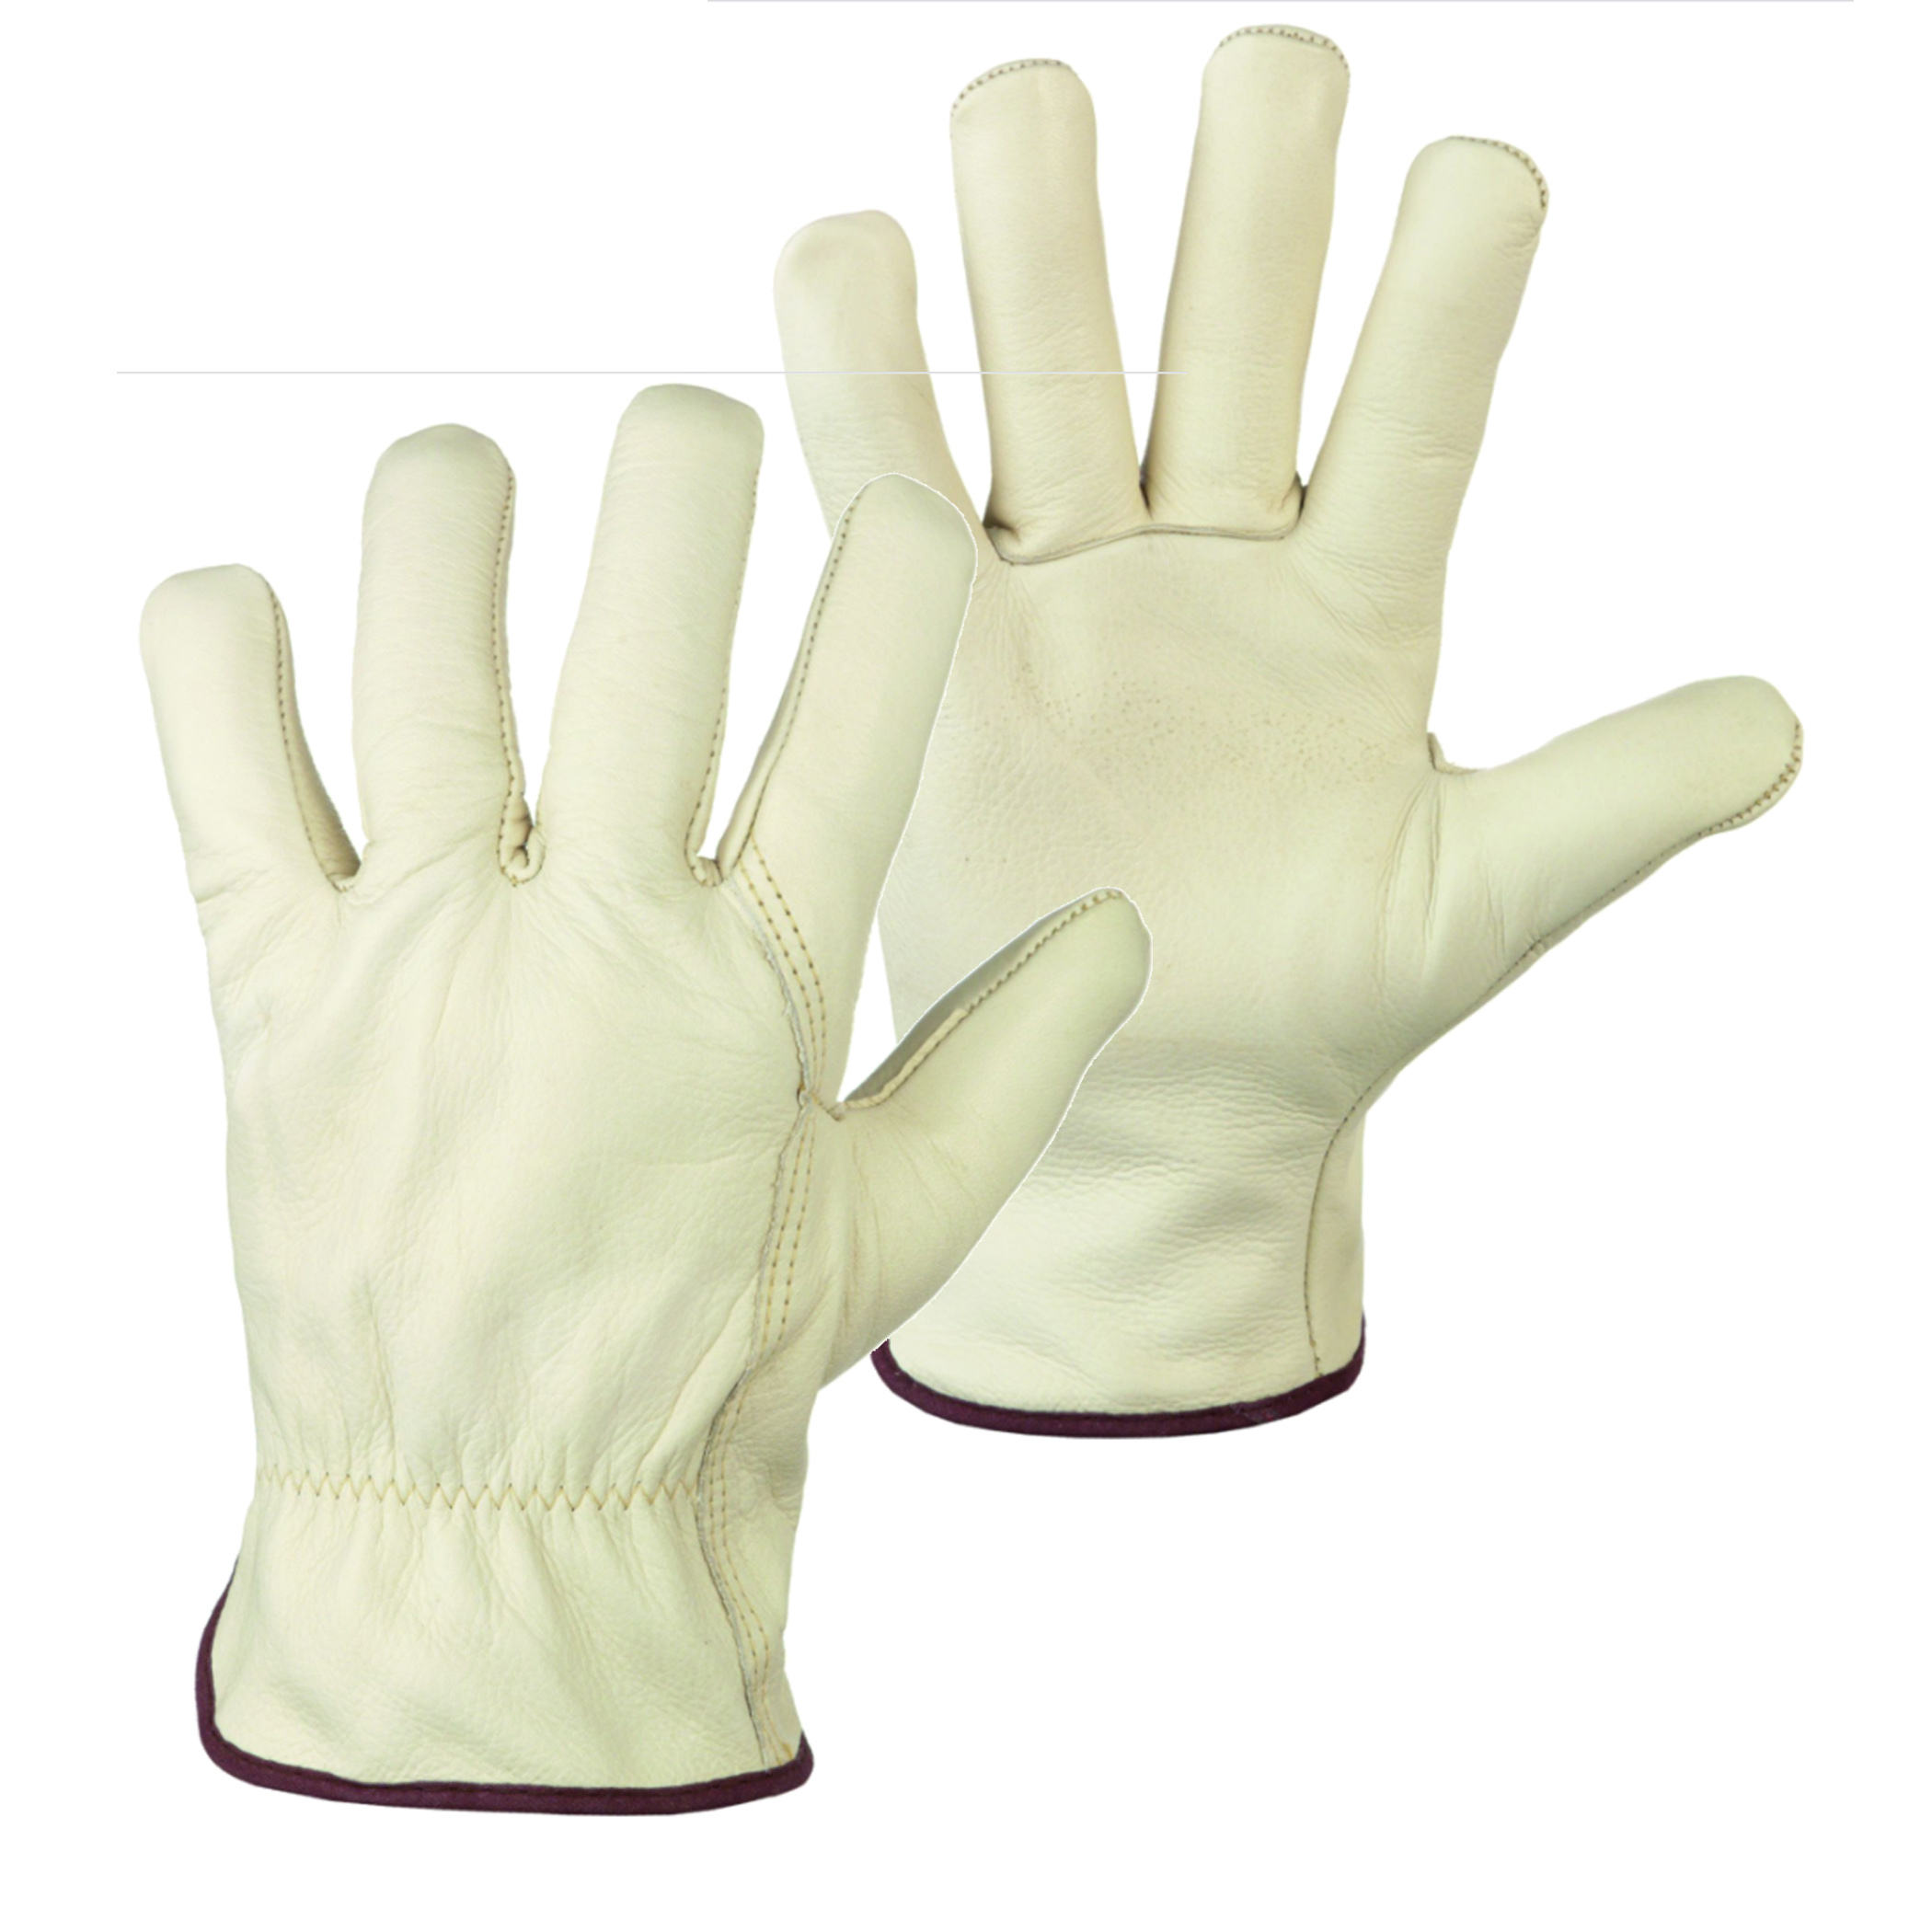 Standard Grain Leather Drivers work gloves / Work welding gloves / working drivers gloves made of grain leather,sizes M,L,XL,2XL